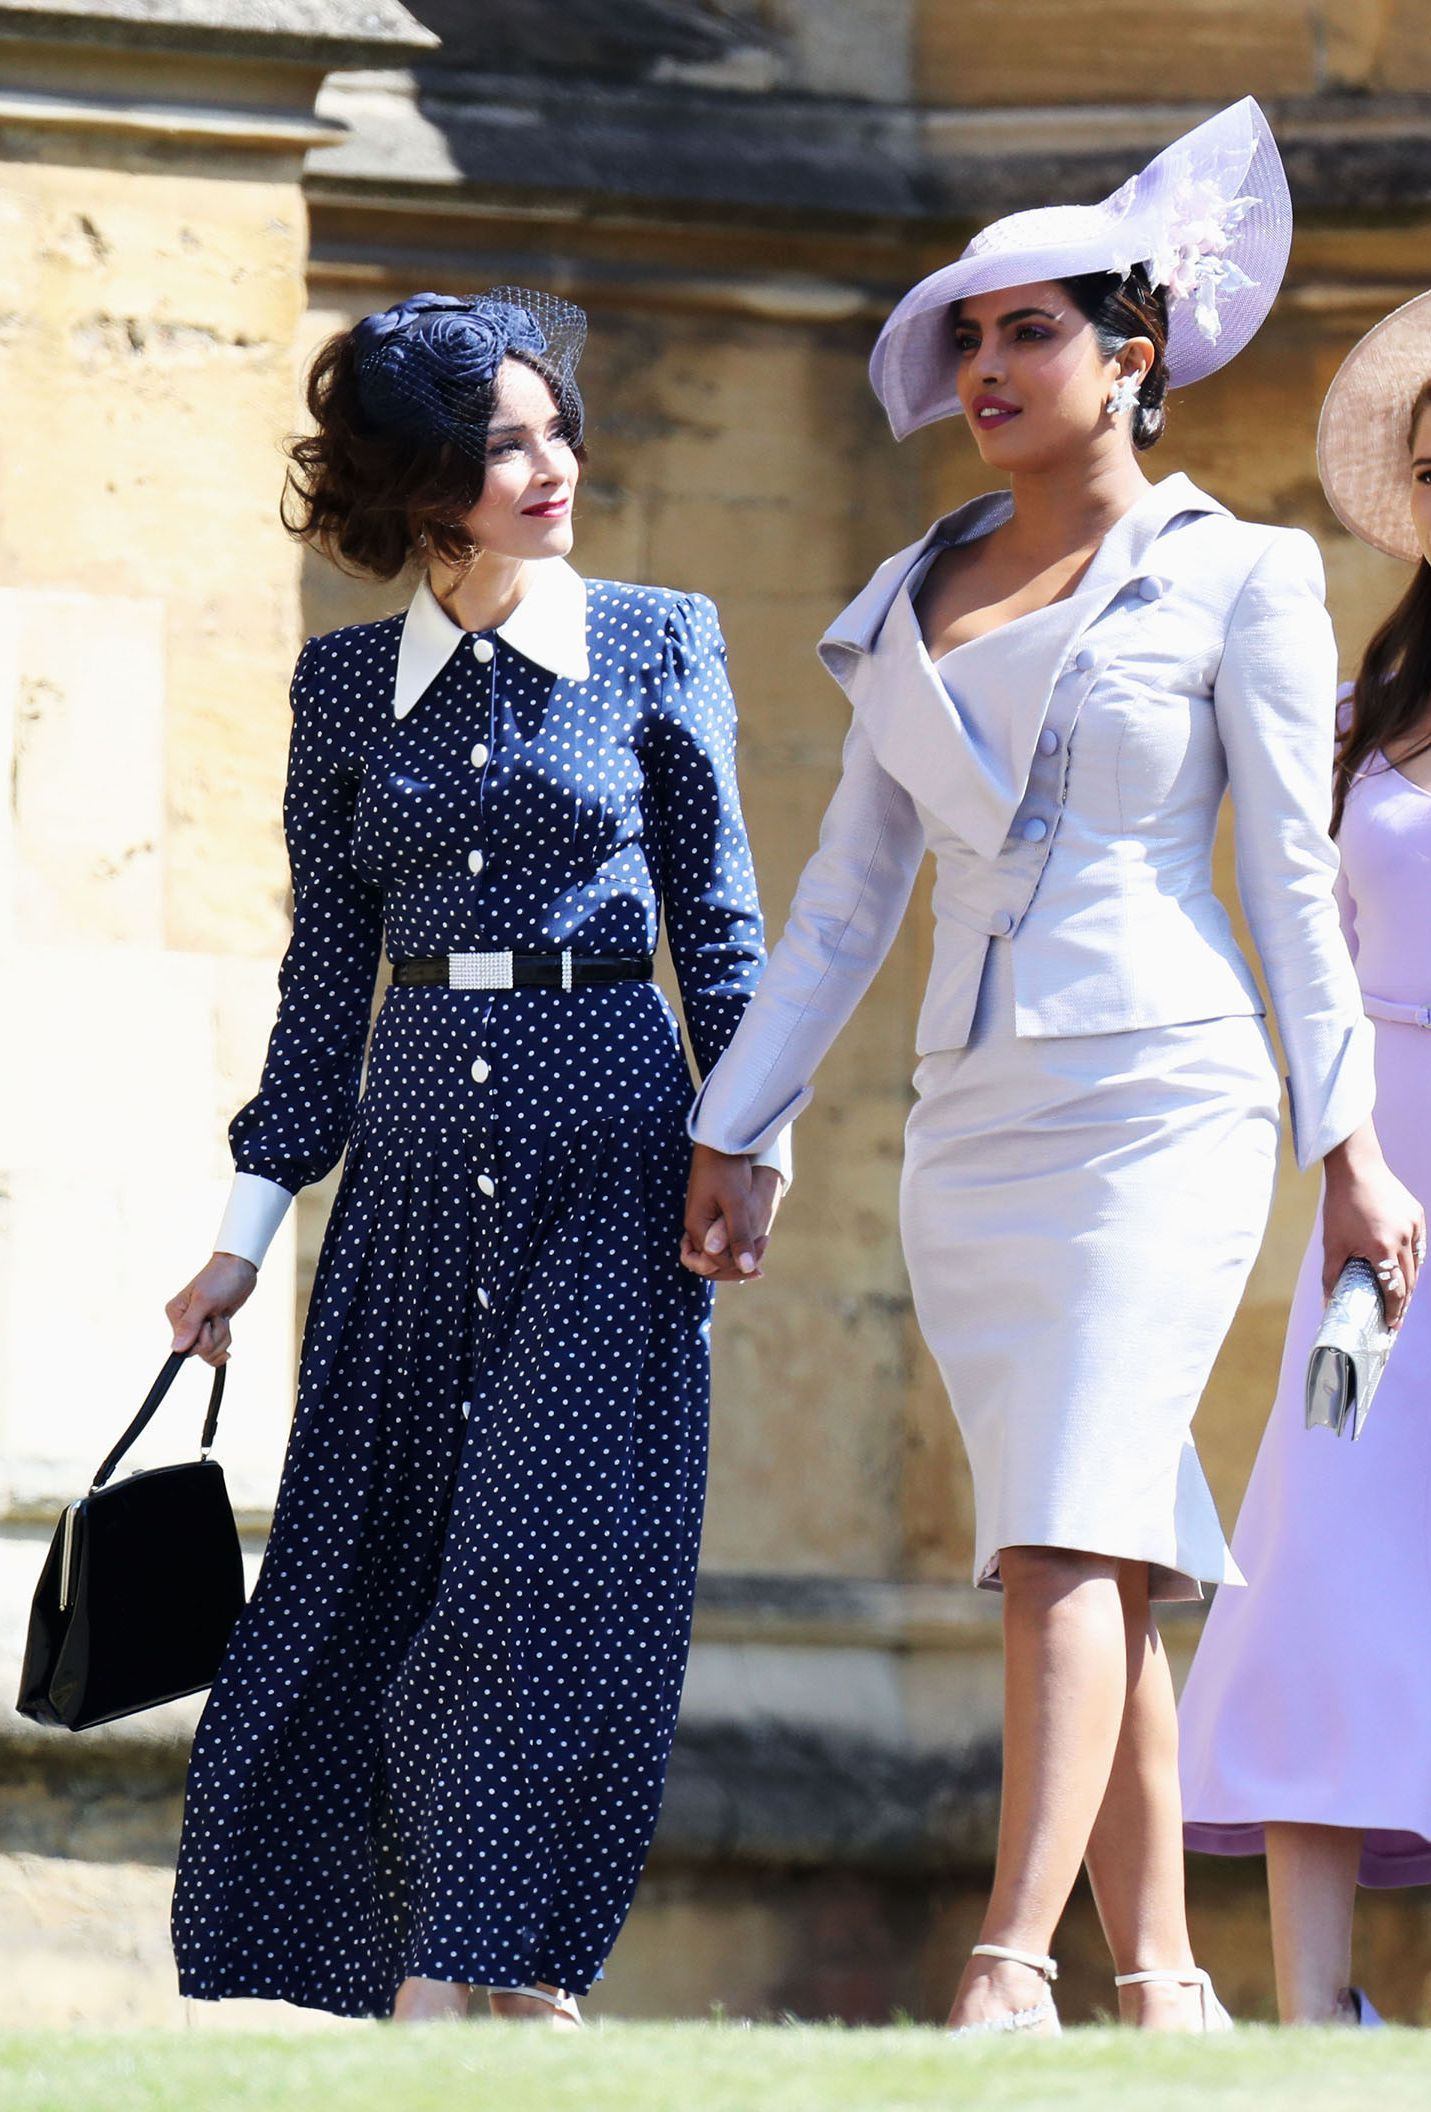 dc72184d7fa The Whole Suits Cast Arrives at the Royal Wedding- HarpersBAZAAR.com